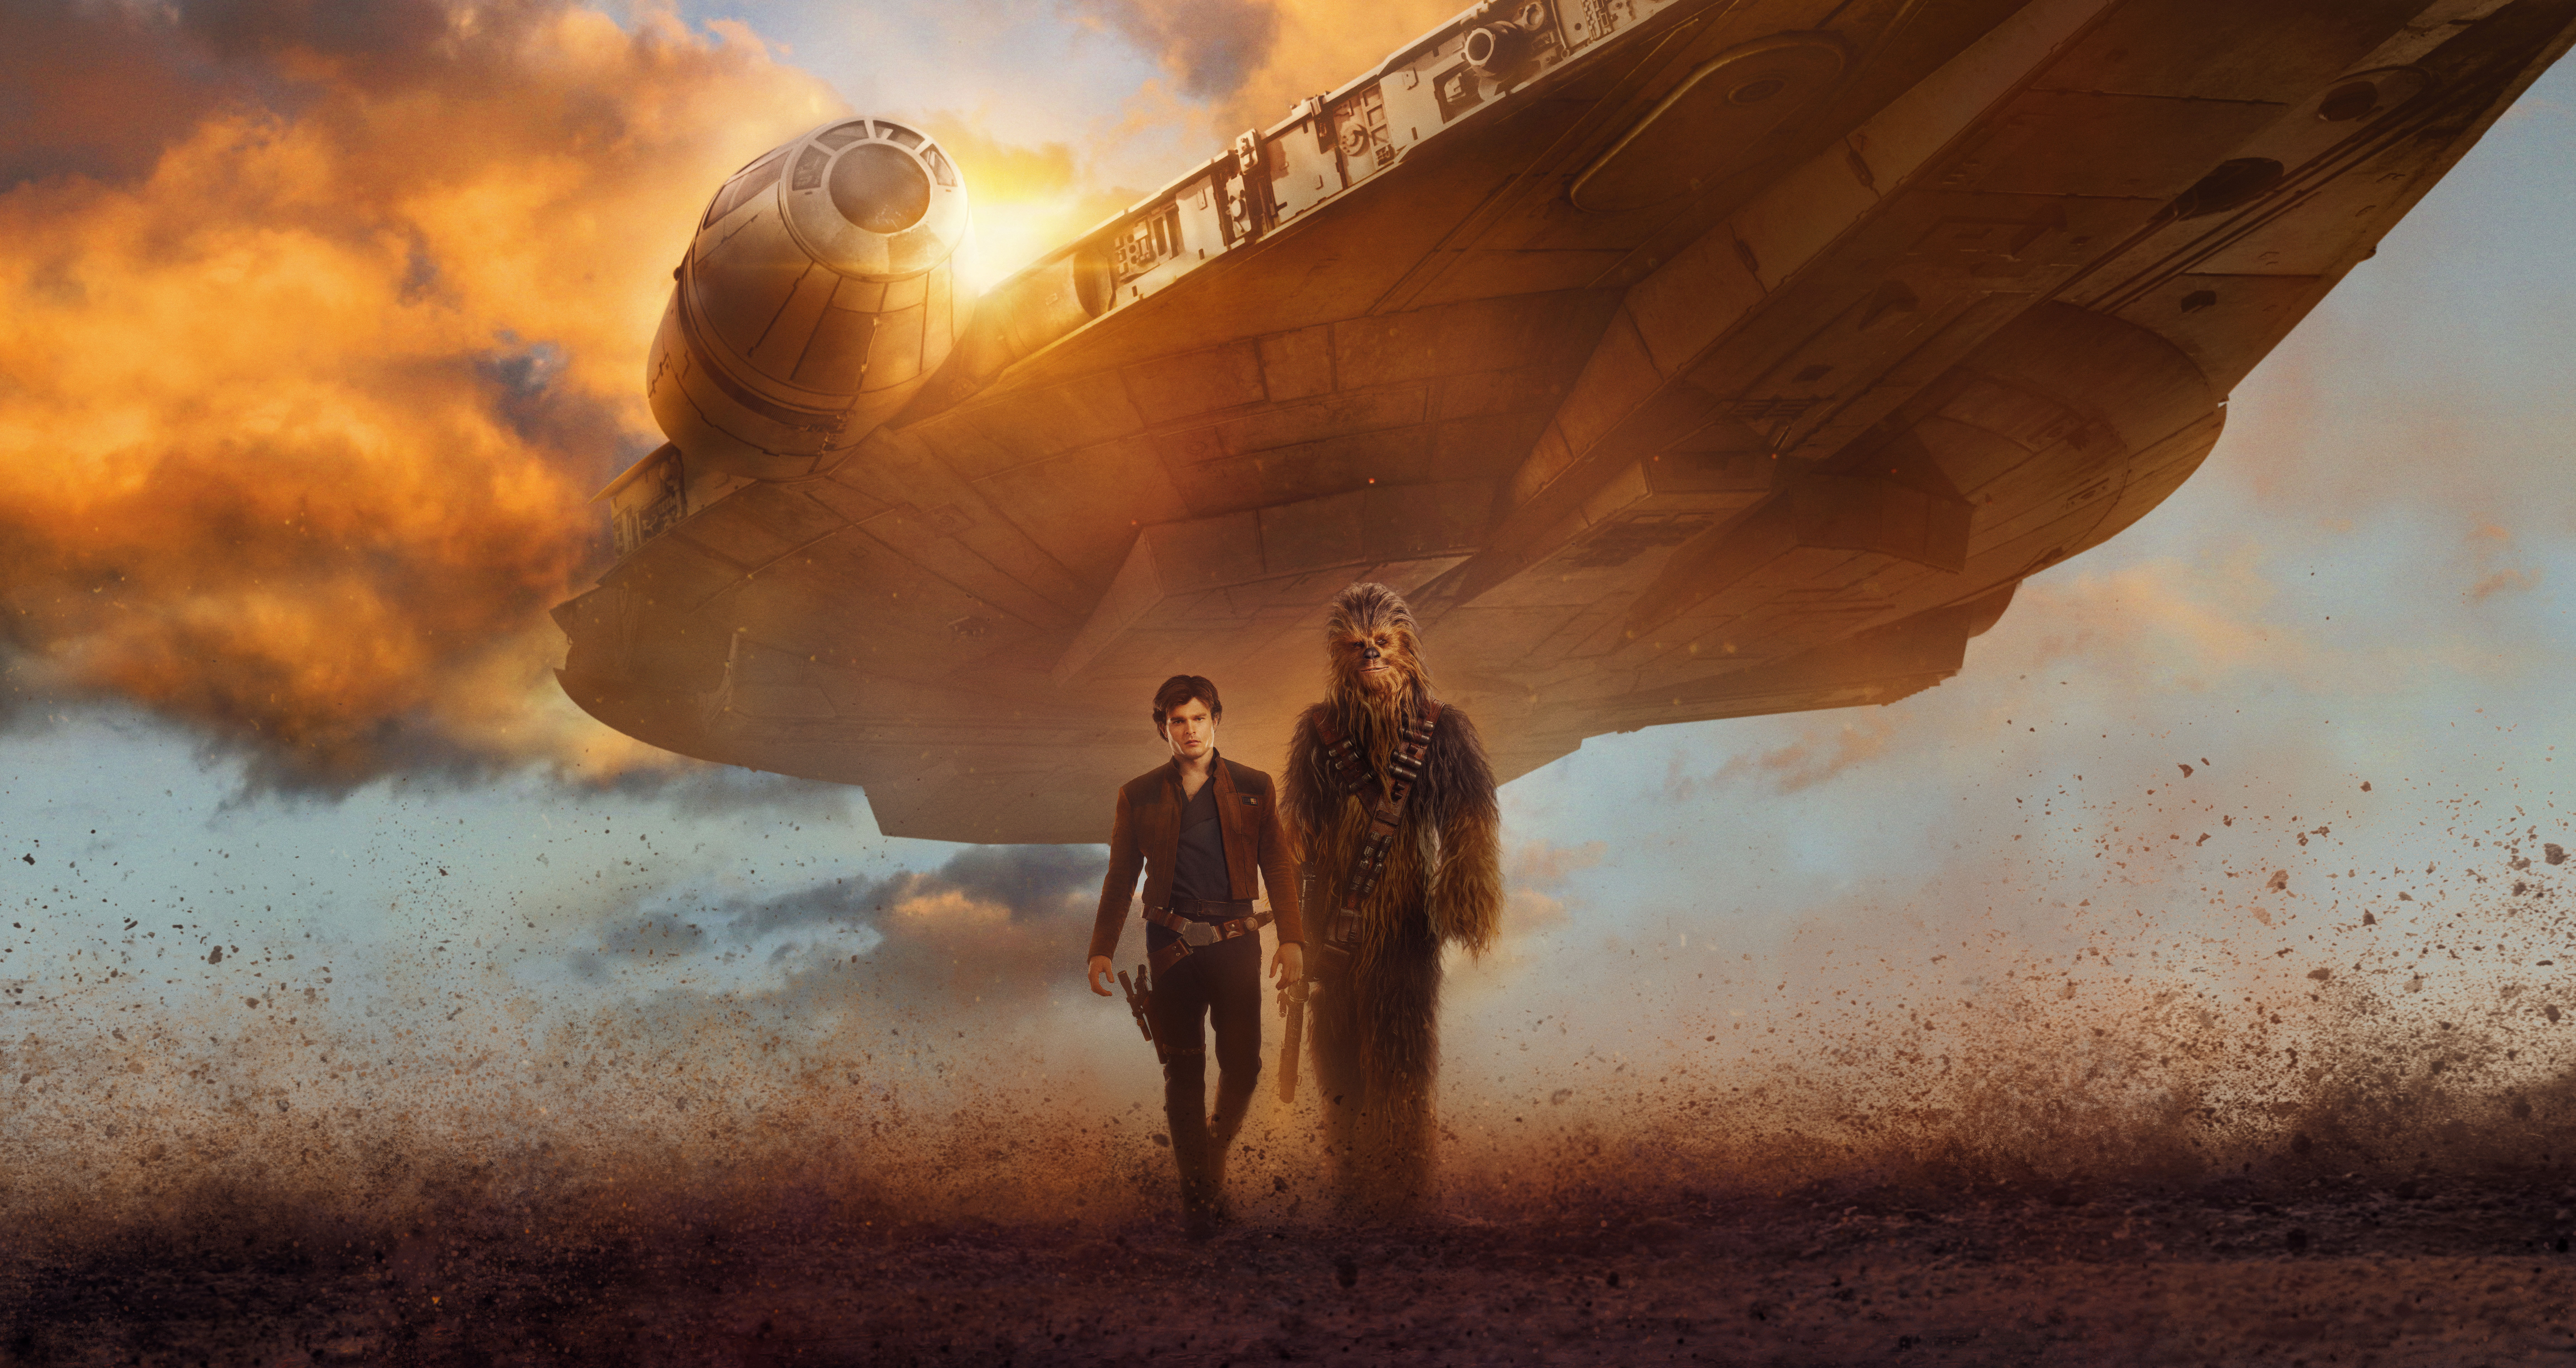 2048x1152 Solo A Star Wars Story 10k 2048x1152 Resolution Hd 4k Wallpapers Images Backgrounds Photos And Pictures